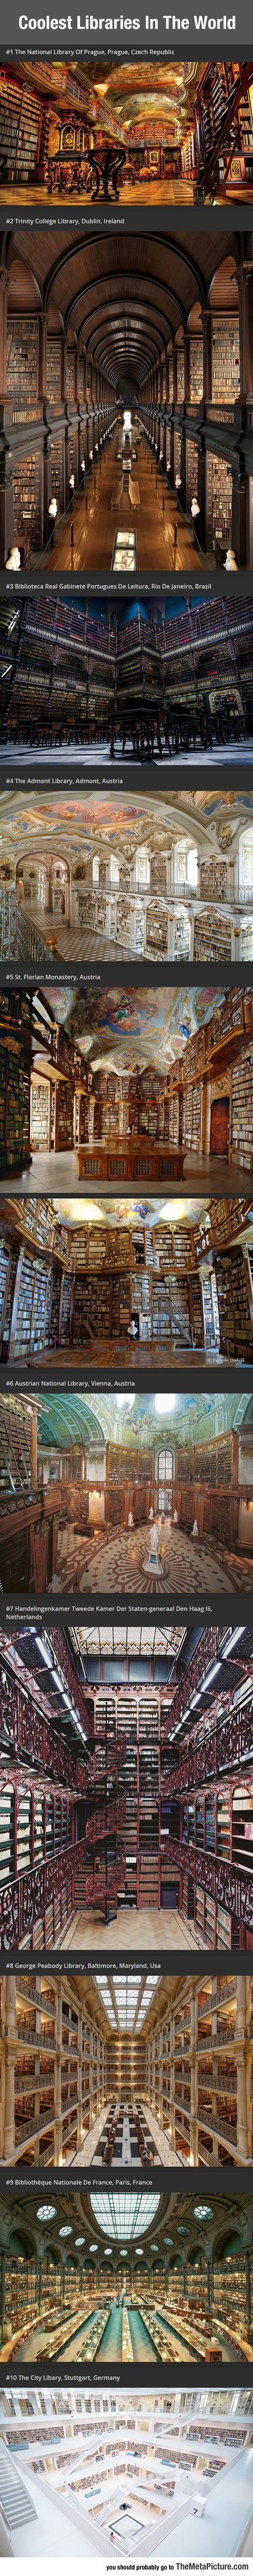 To reinforce my desire to visit Austria... BOOKS!